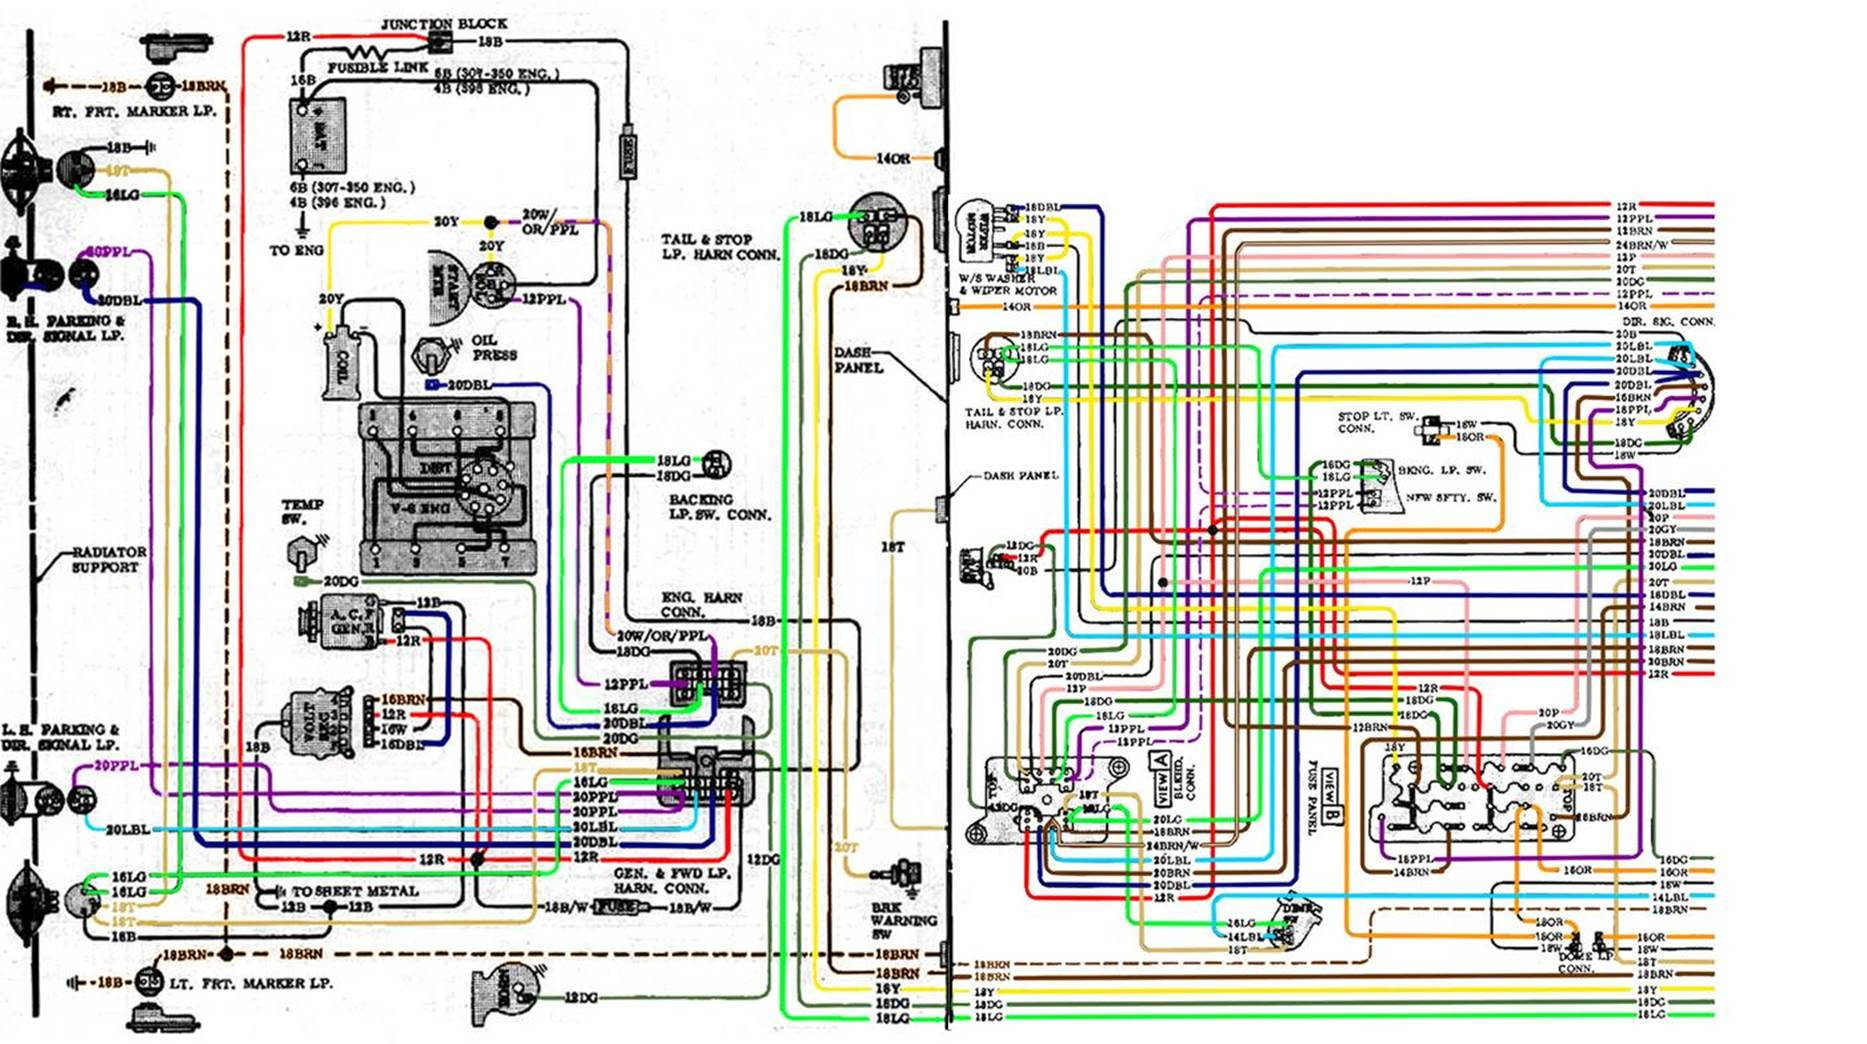 image002 chevy wiring diagrams chevy radio wiring \u2022 wiring diagrams j 1964 chevy c10 wiring harness at eliteediting.co